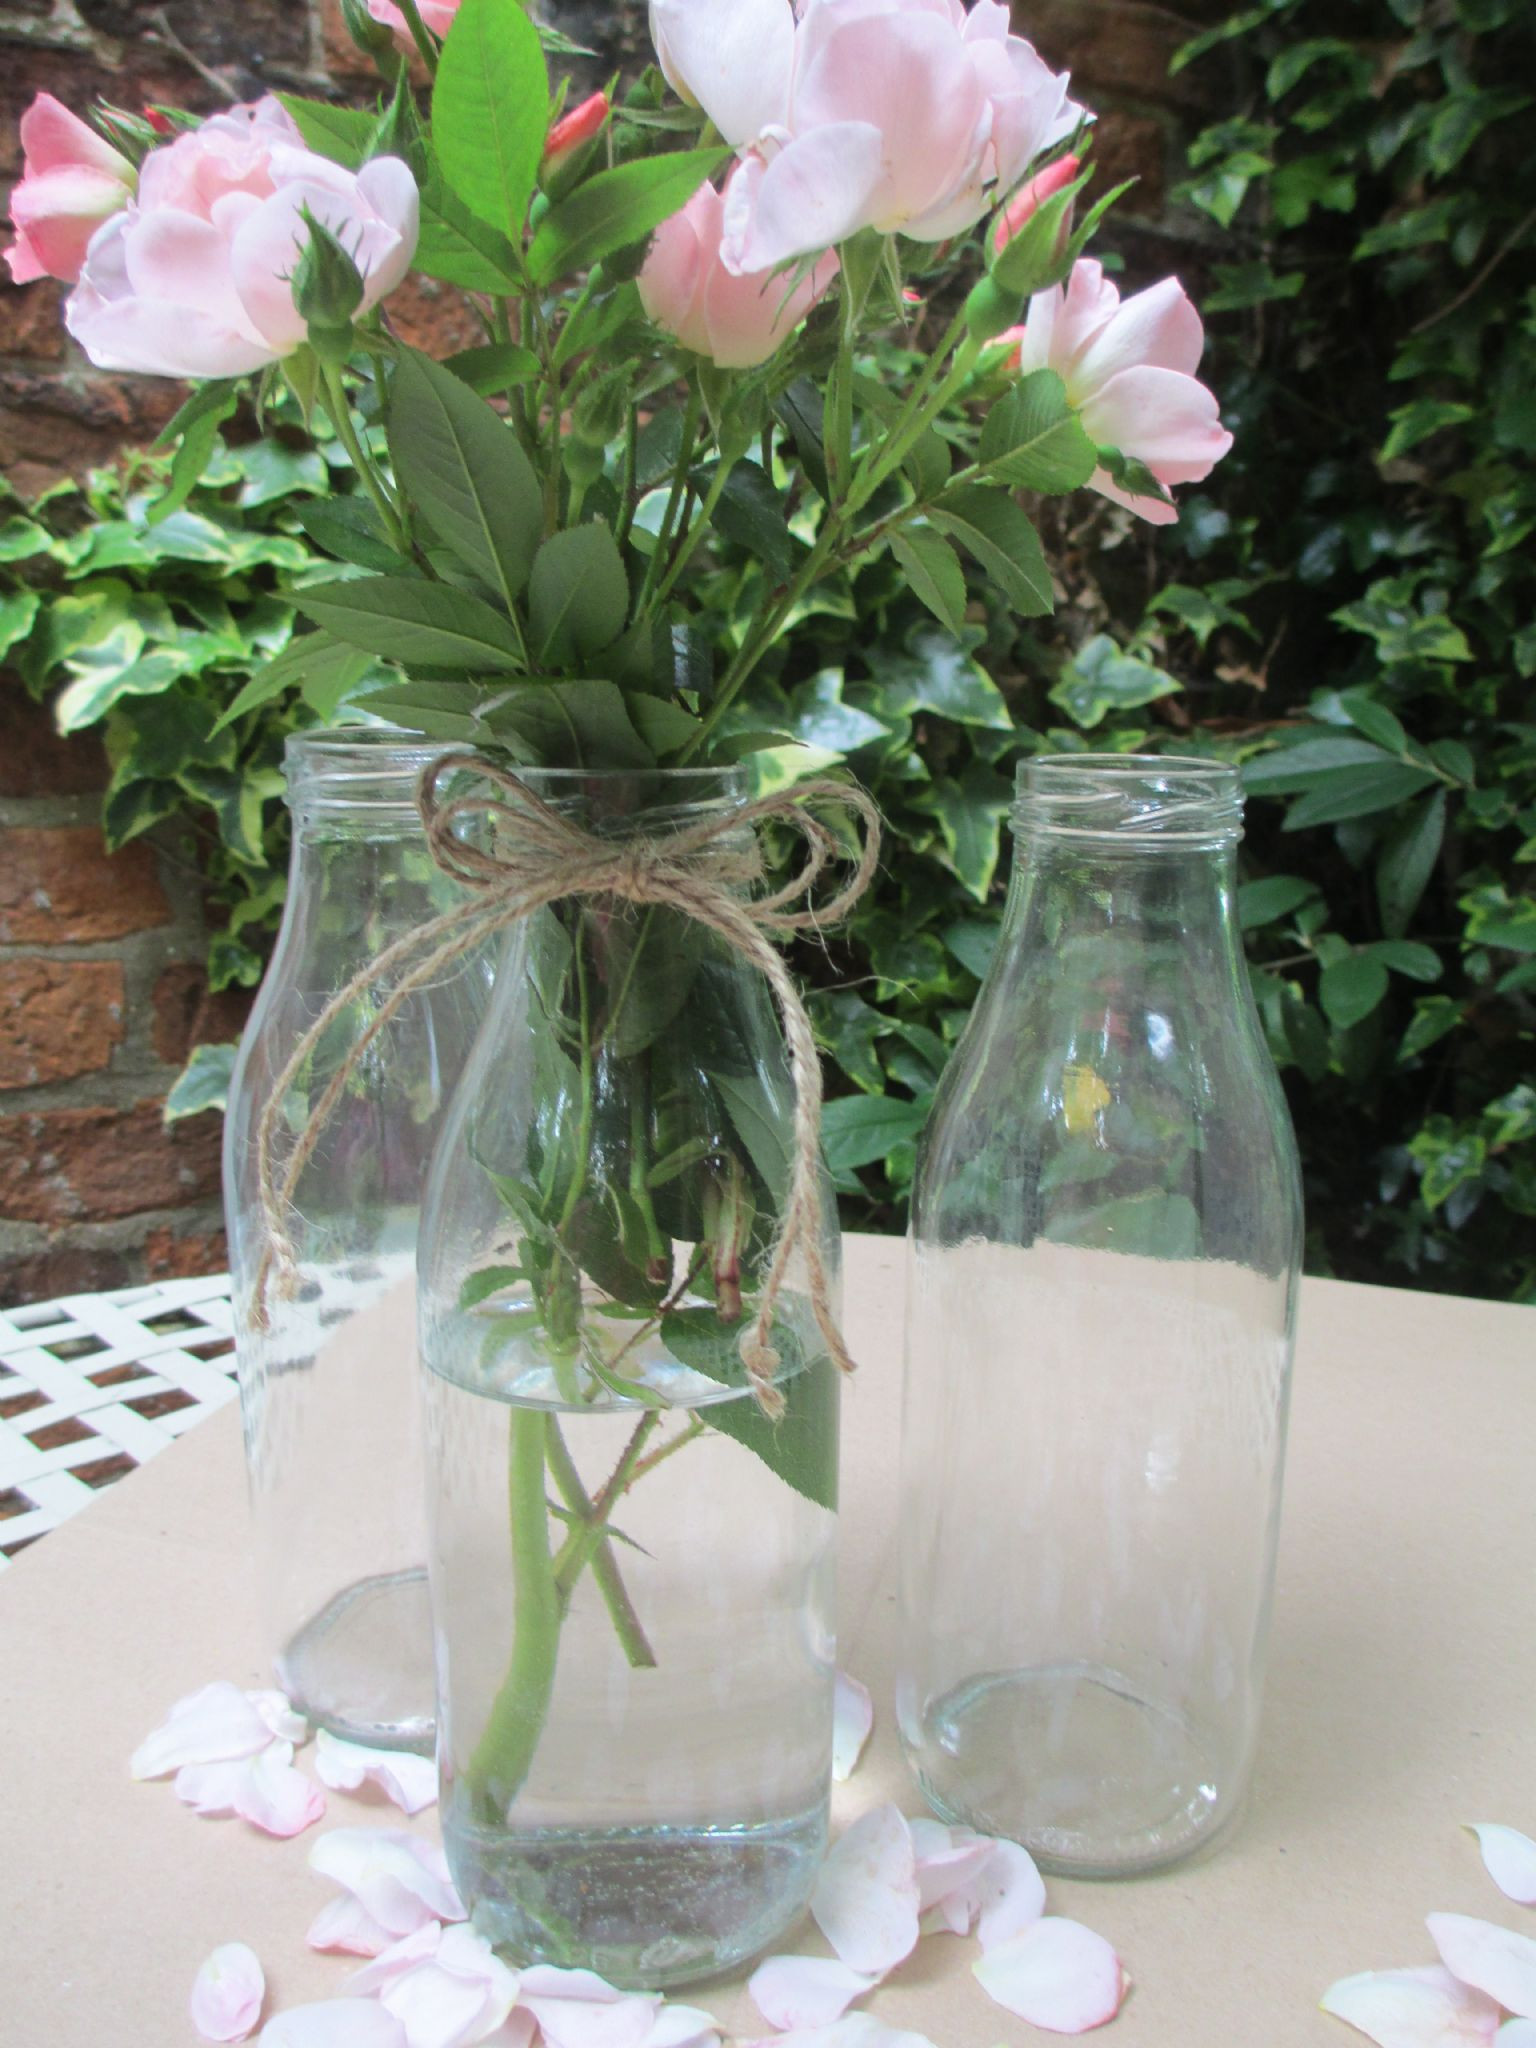 Milk Bottles For Decoration 27 Nice Vintage Wedding Centerpiece Vases Decorative Vase Ideas